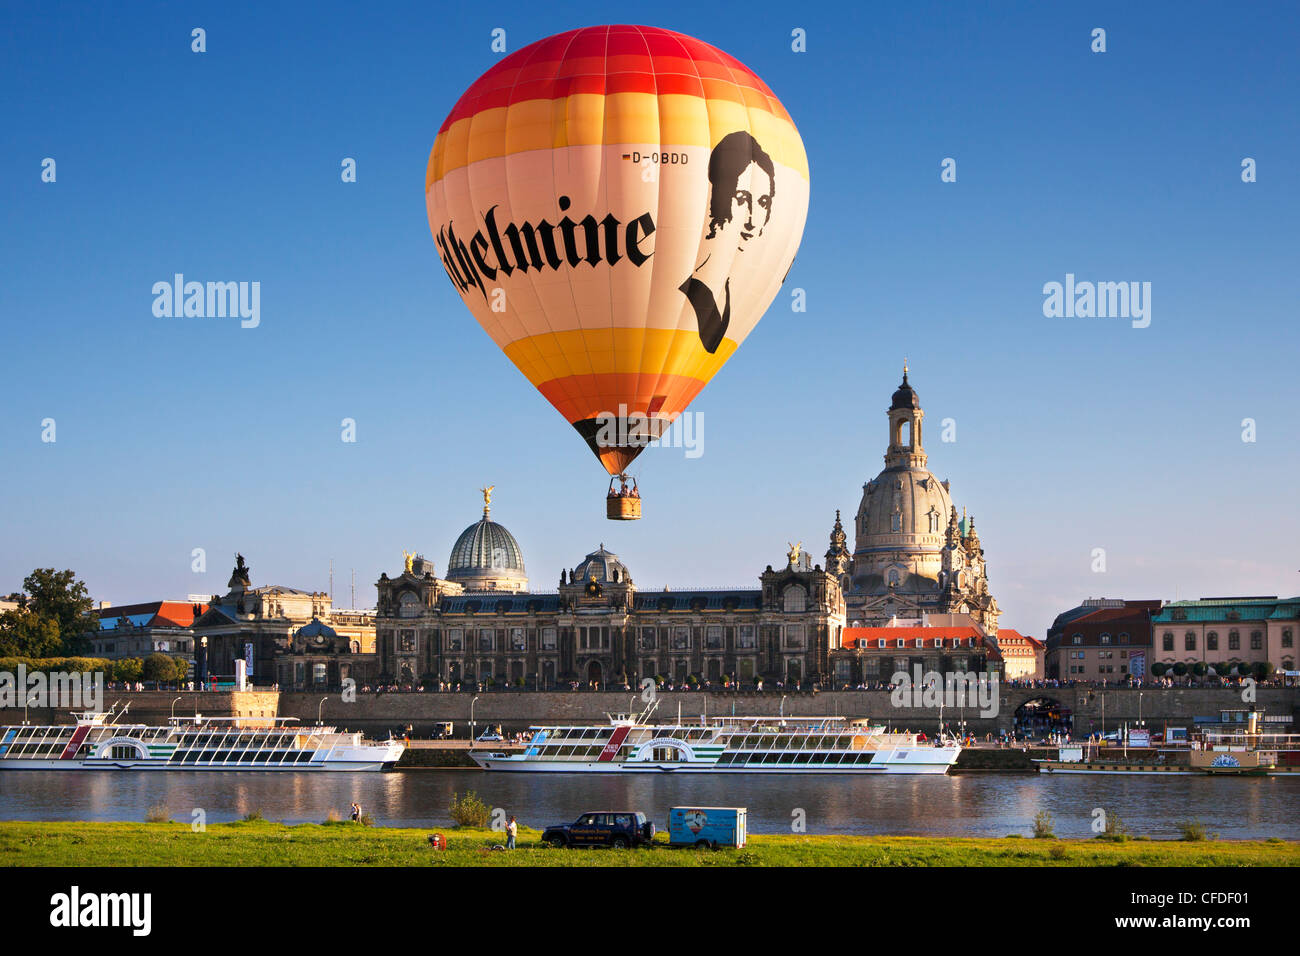 Balloons rising from the Elbe riverbank, Bruehlsche Terrasse and Frauenkirche in the background, Dresden, Saxonia, - Stock Image